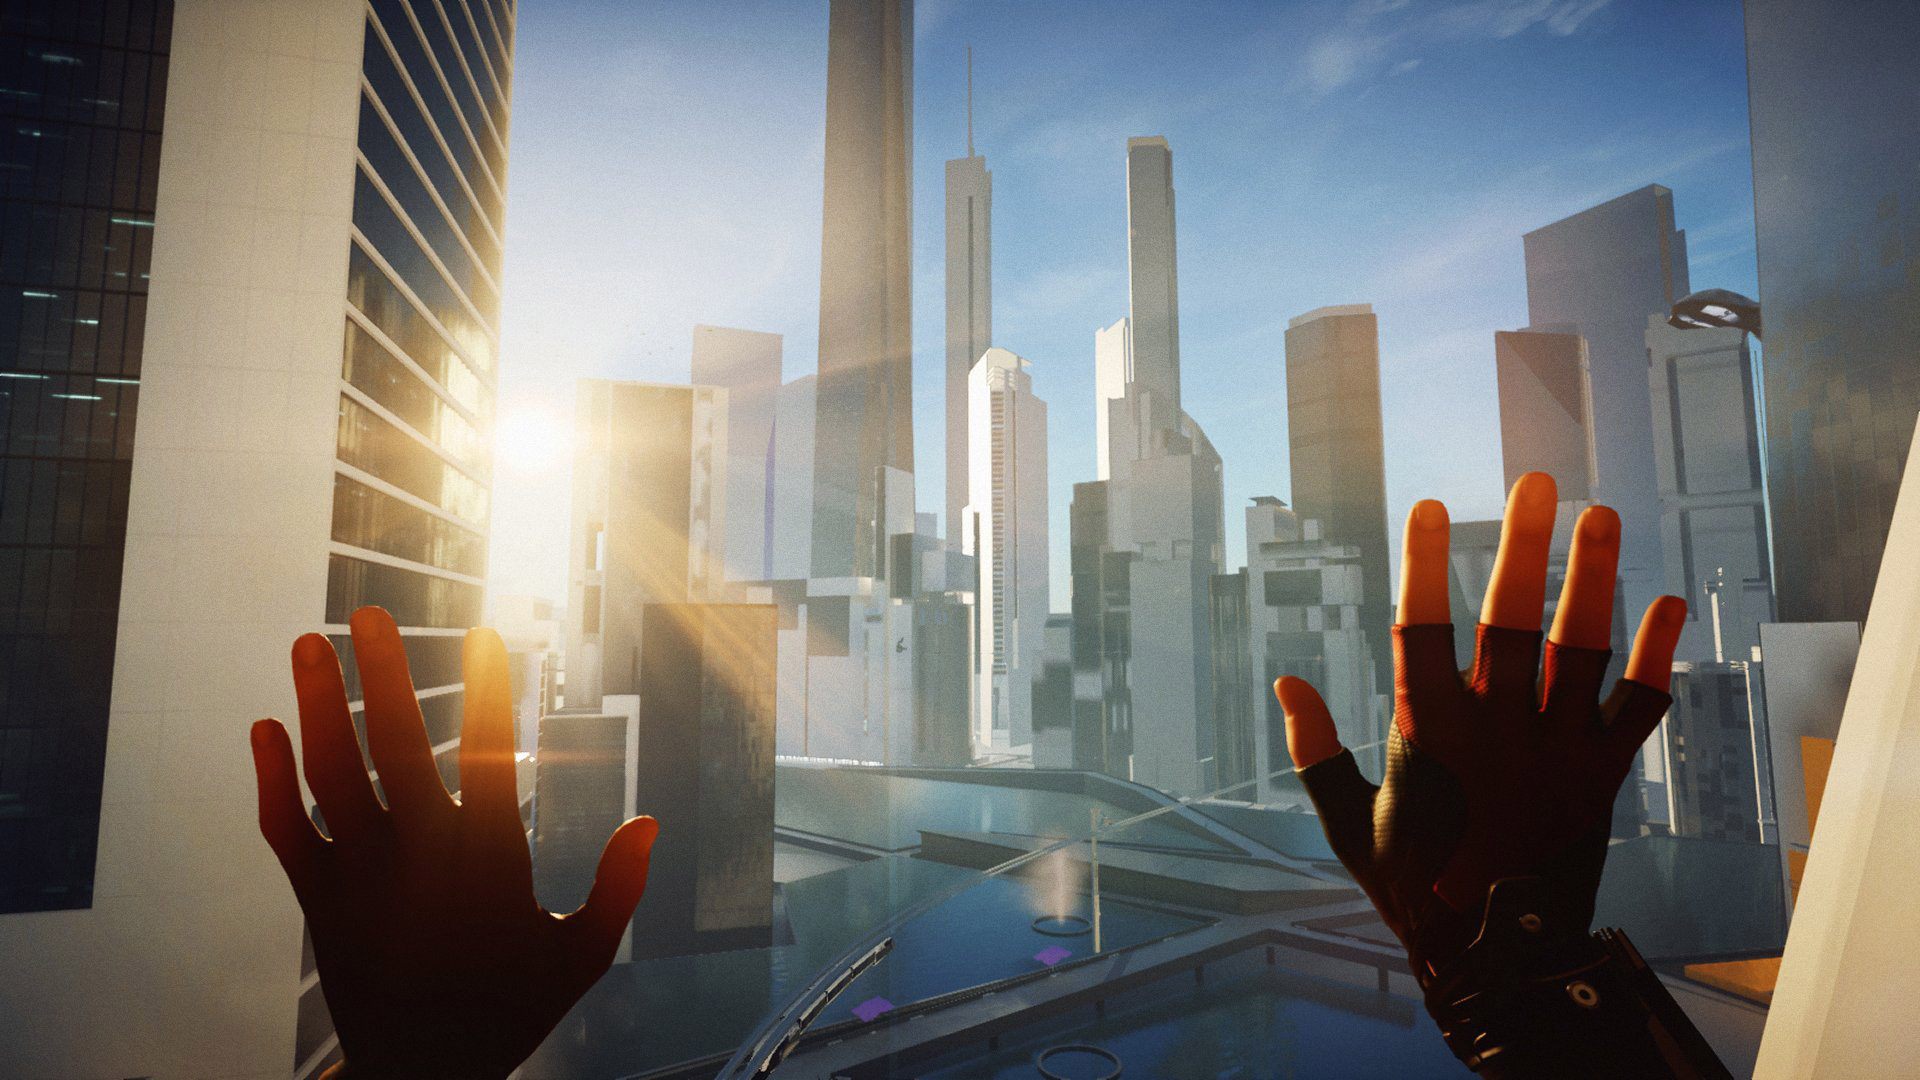 Free Mirror's Edge Catalyst Wallpaper in 1920x1080